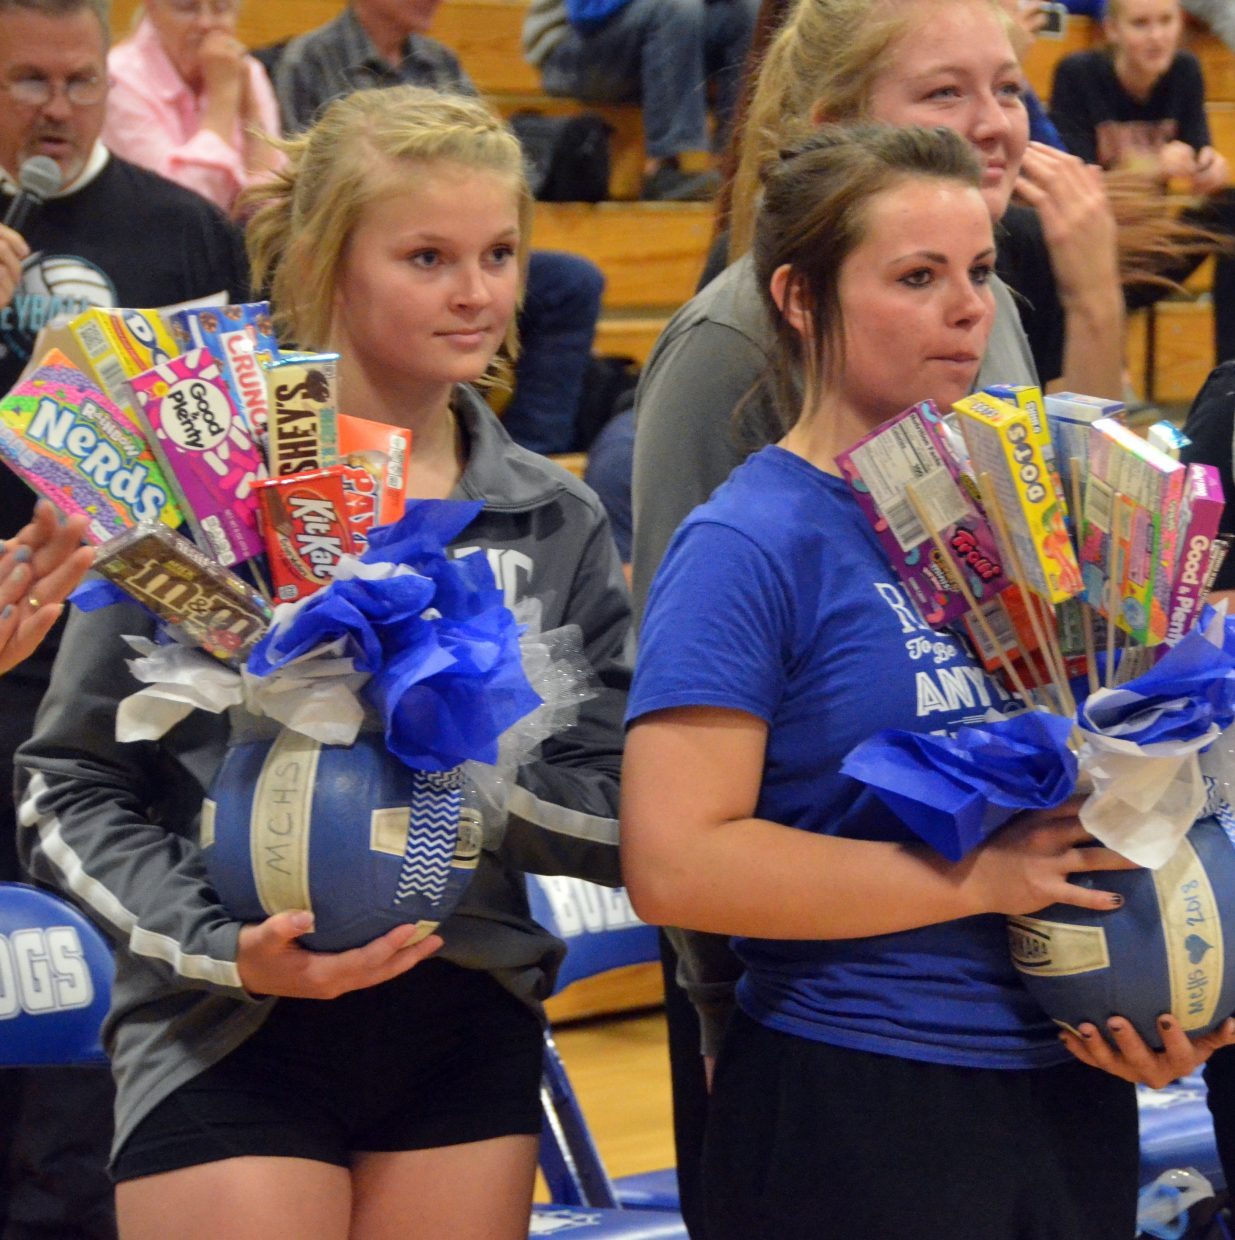 Moffat County High School JV volleyball players Jacie Evenson, left, and Darbi Zimmerman wait to present gift baskets for upperclassmen during Senior Night.